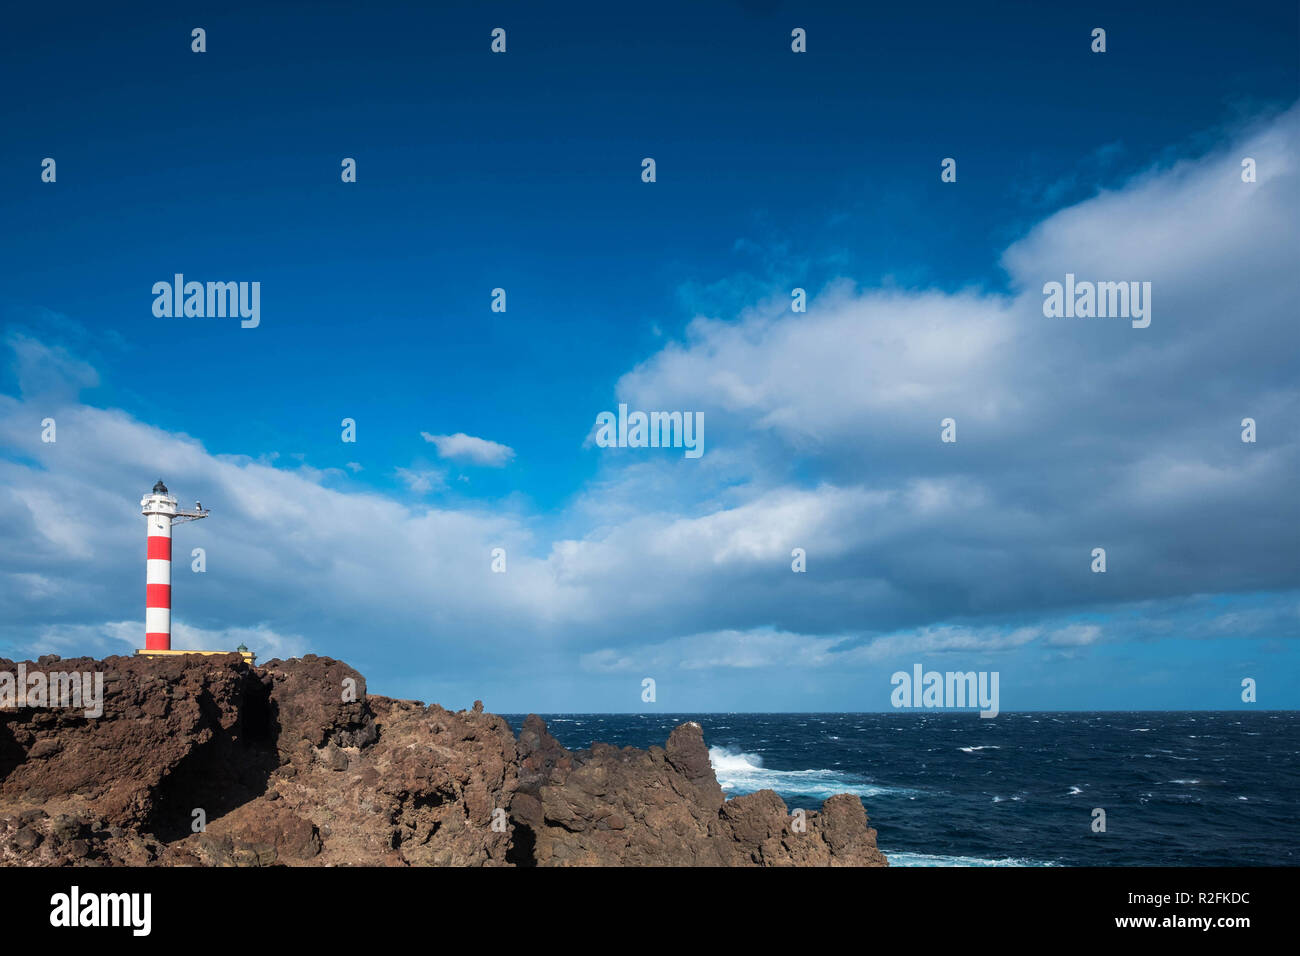 old style classic lighhouse on the coast of Tenerife in the middle of the atlantic ocean. Power of the wave and isolated home. Beautiful blue sky. Freedom concept. - Stock Image